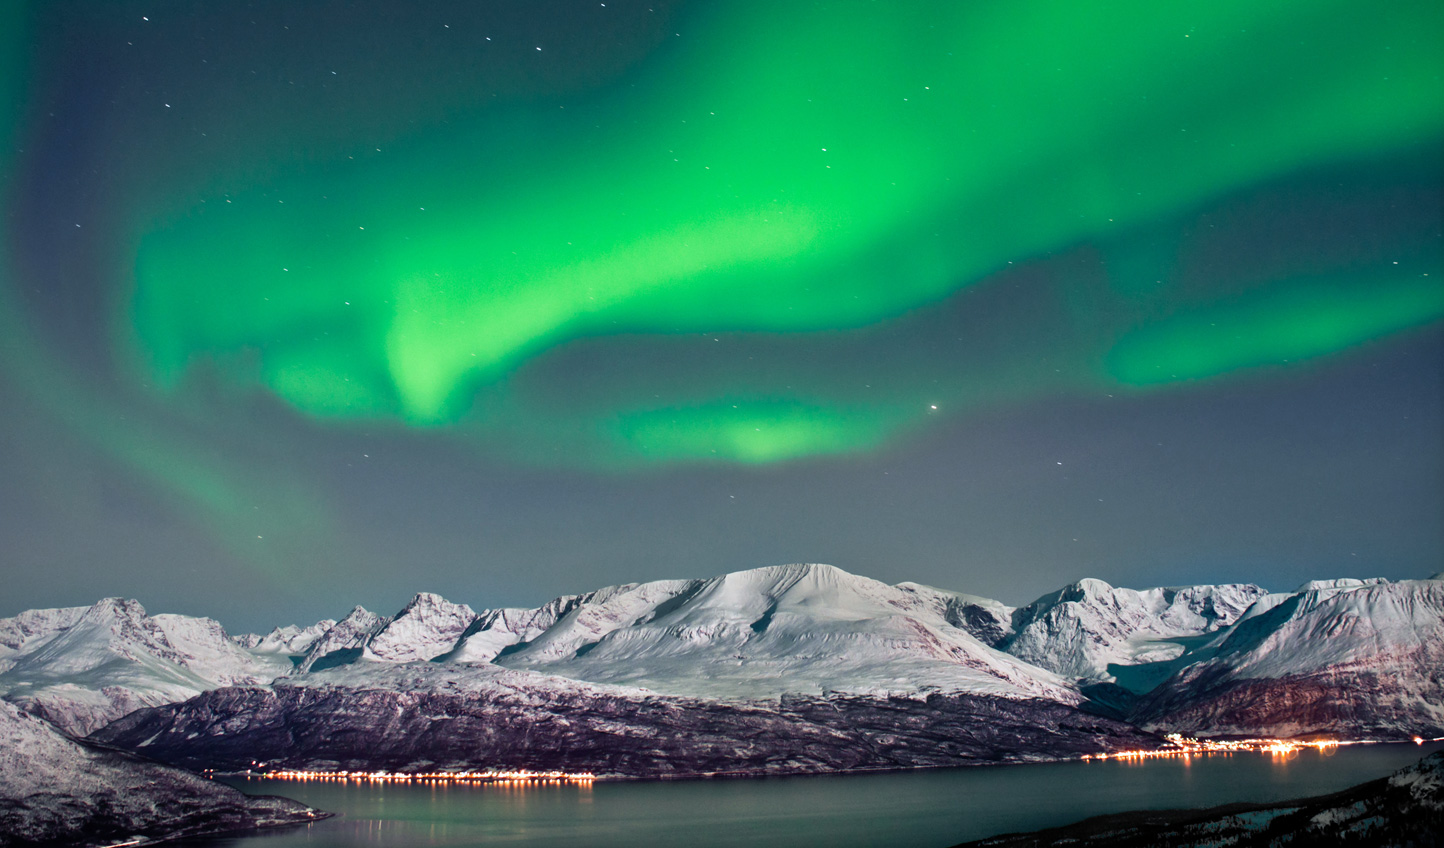 By night, watch the flicker of the Northern Lights over the fjords